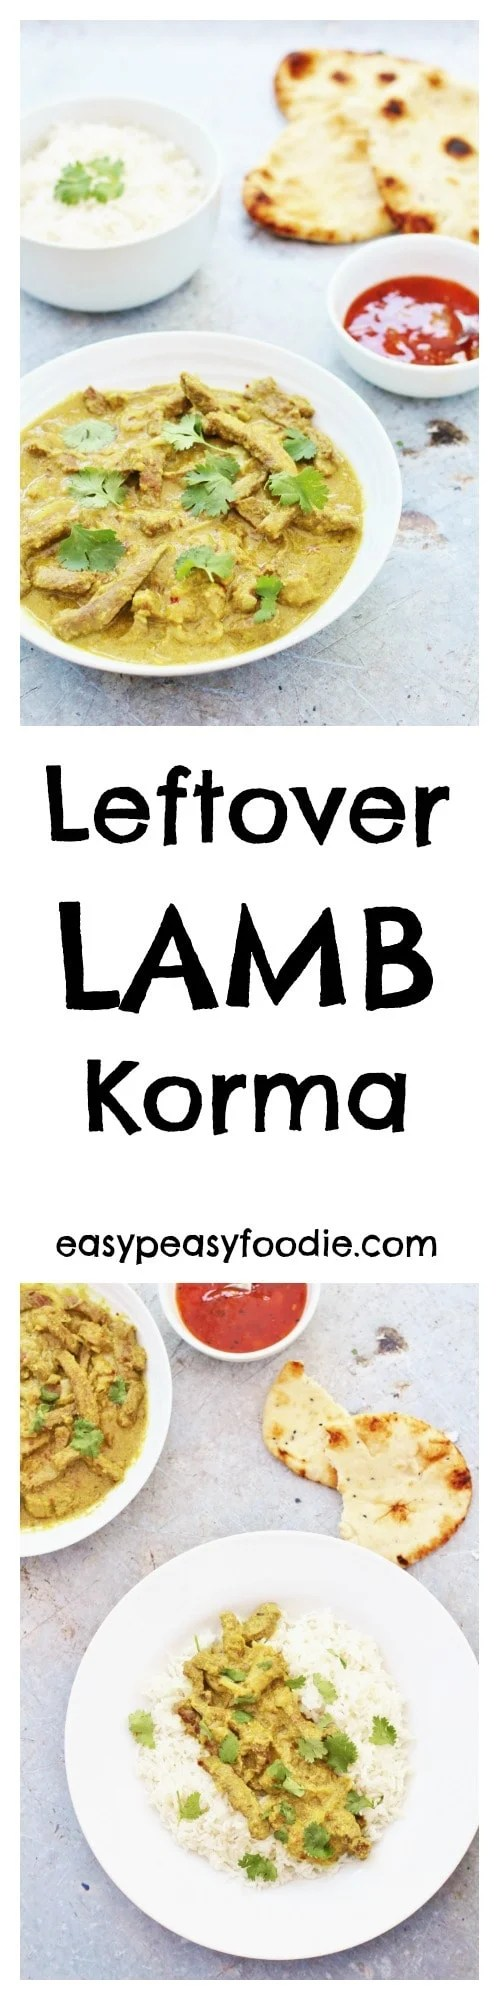 Had a delicious joint of roast lamb and wondering what to do with the leftovers? How about a quick and easy curry? This Leftover Lamb Korma takes just 25 minutes – perfect for a quick and easy midweek meal. (And if you don't have any leftover roast lamb, read on – I have tips on how to 'create' some leftovers!!) #lamb #leftoverlamb #korma #lambkorma #leftoverlambkorma #lambcurry #loveyourleftovers #roastlamb #roastdinner #easyrecipes #midweekmeals #familydinners #easypeasyfoodie